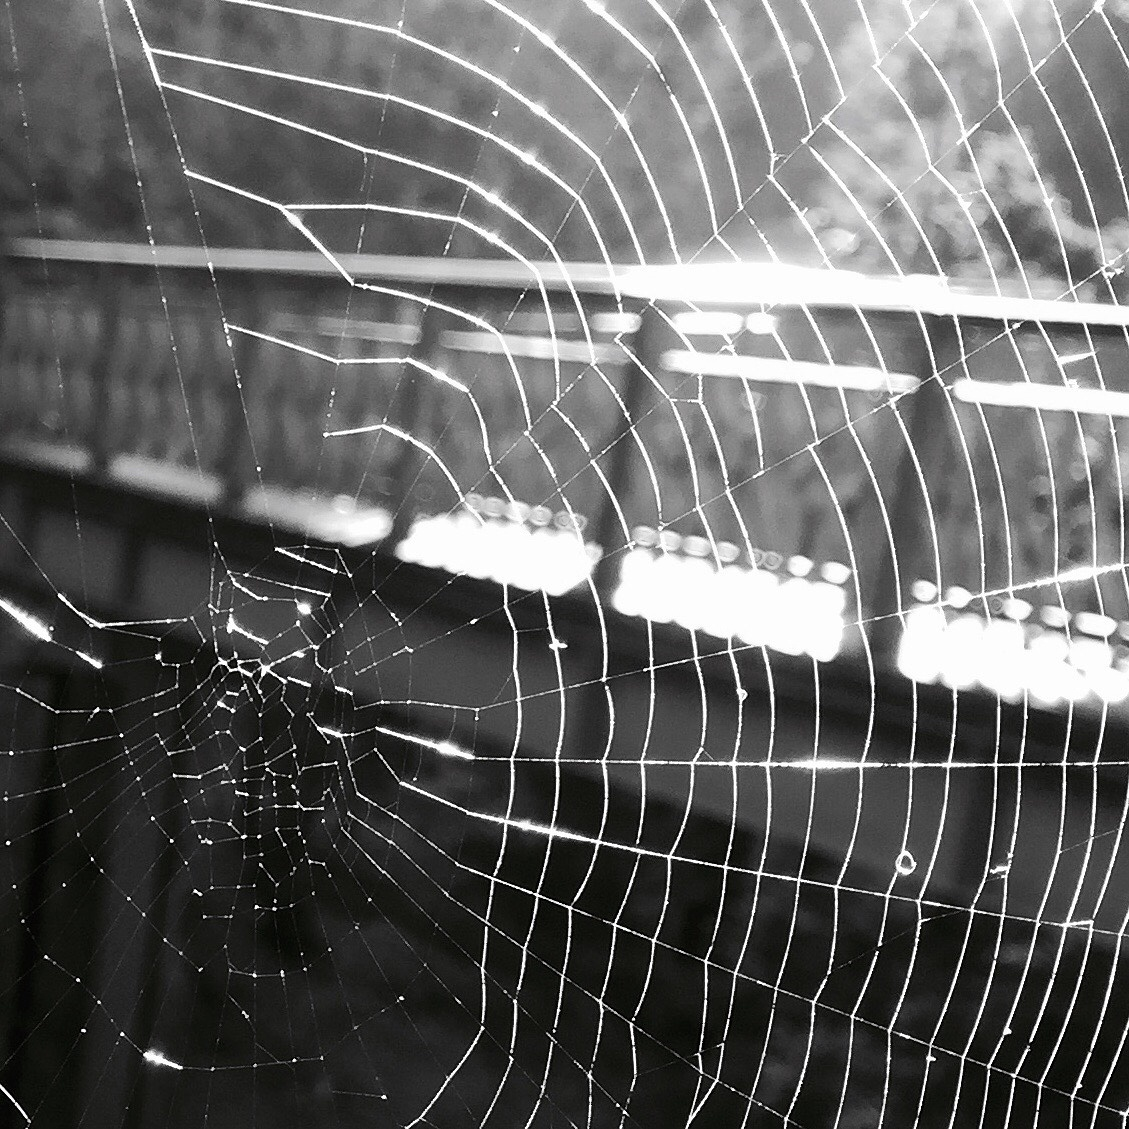 Web of life by Mee Mee